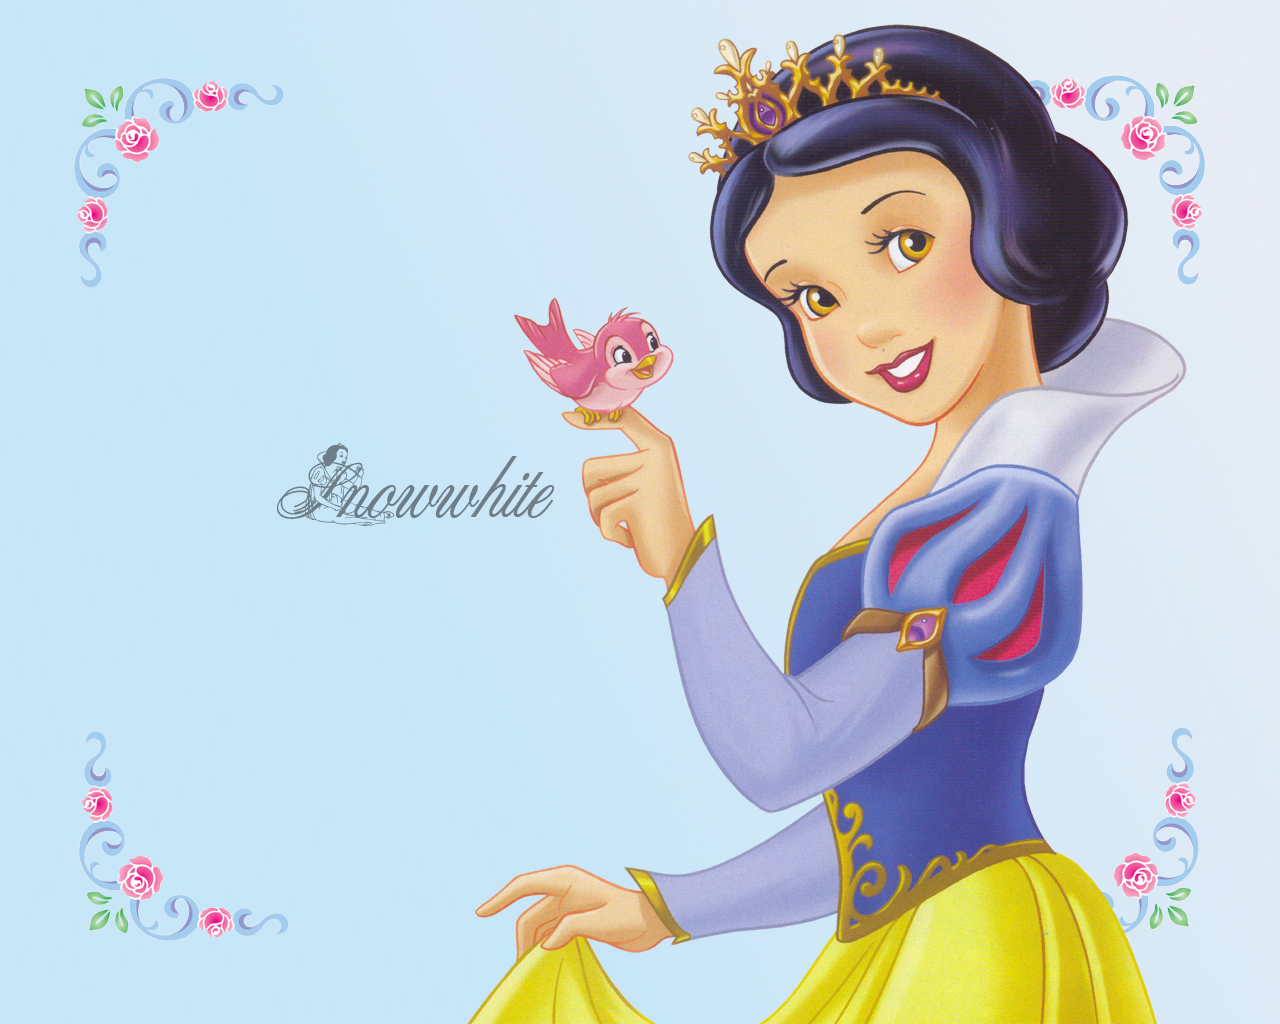 http://3.bp.blogspot.com/-zUFz4WCQYdk/T6_3uFFN4mI/AAAAAAAACY4/3DMg0E-u2Pc/s1600/Disney_princess_snow_white_smile_4.jpg